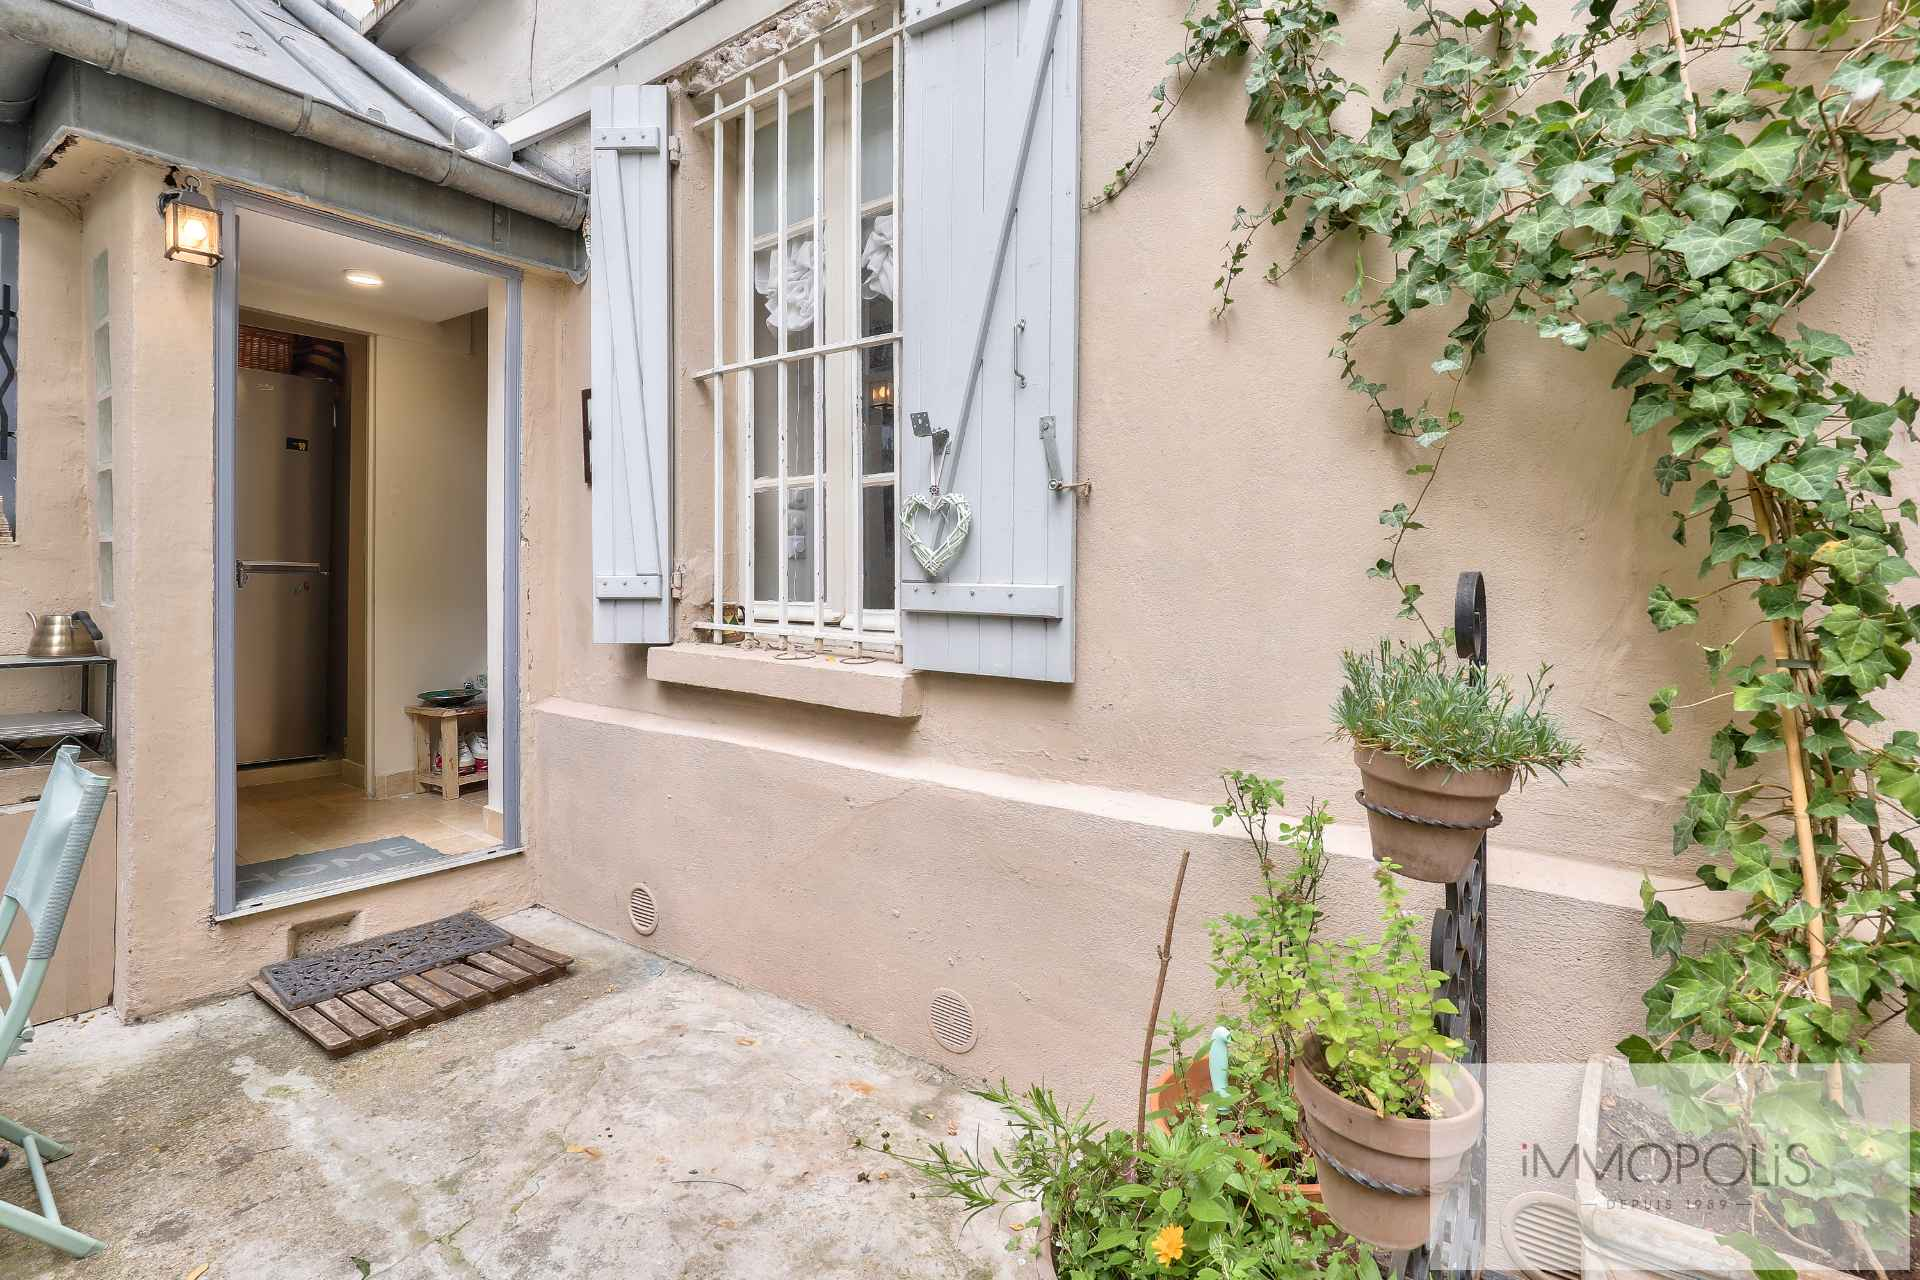 Montmartre, rue Gabrielle, beautiful 2 rooms completely renovated with stones, bricks and exposed beams: like a house! 4